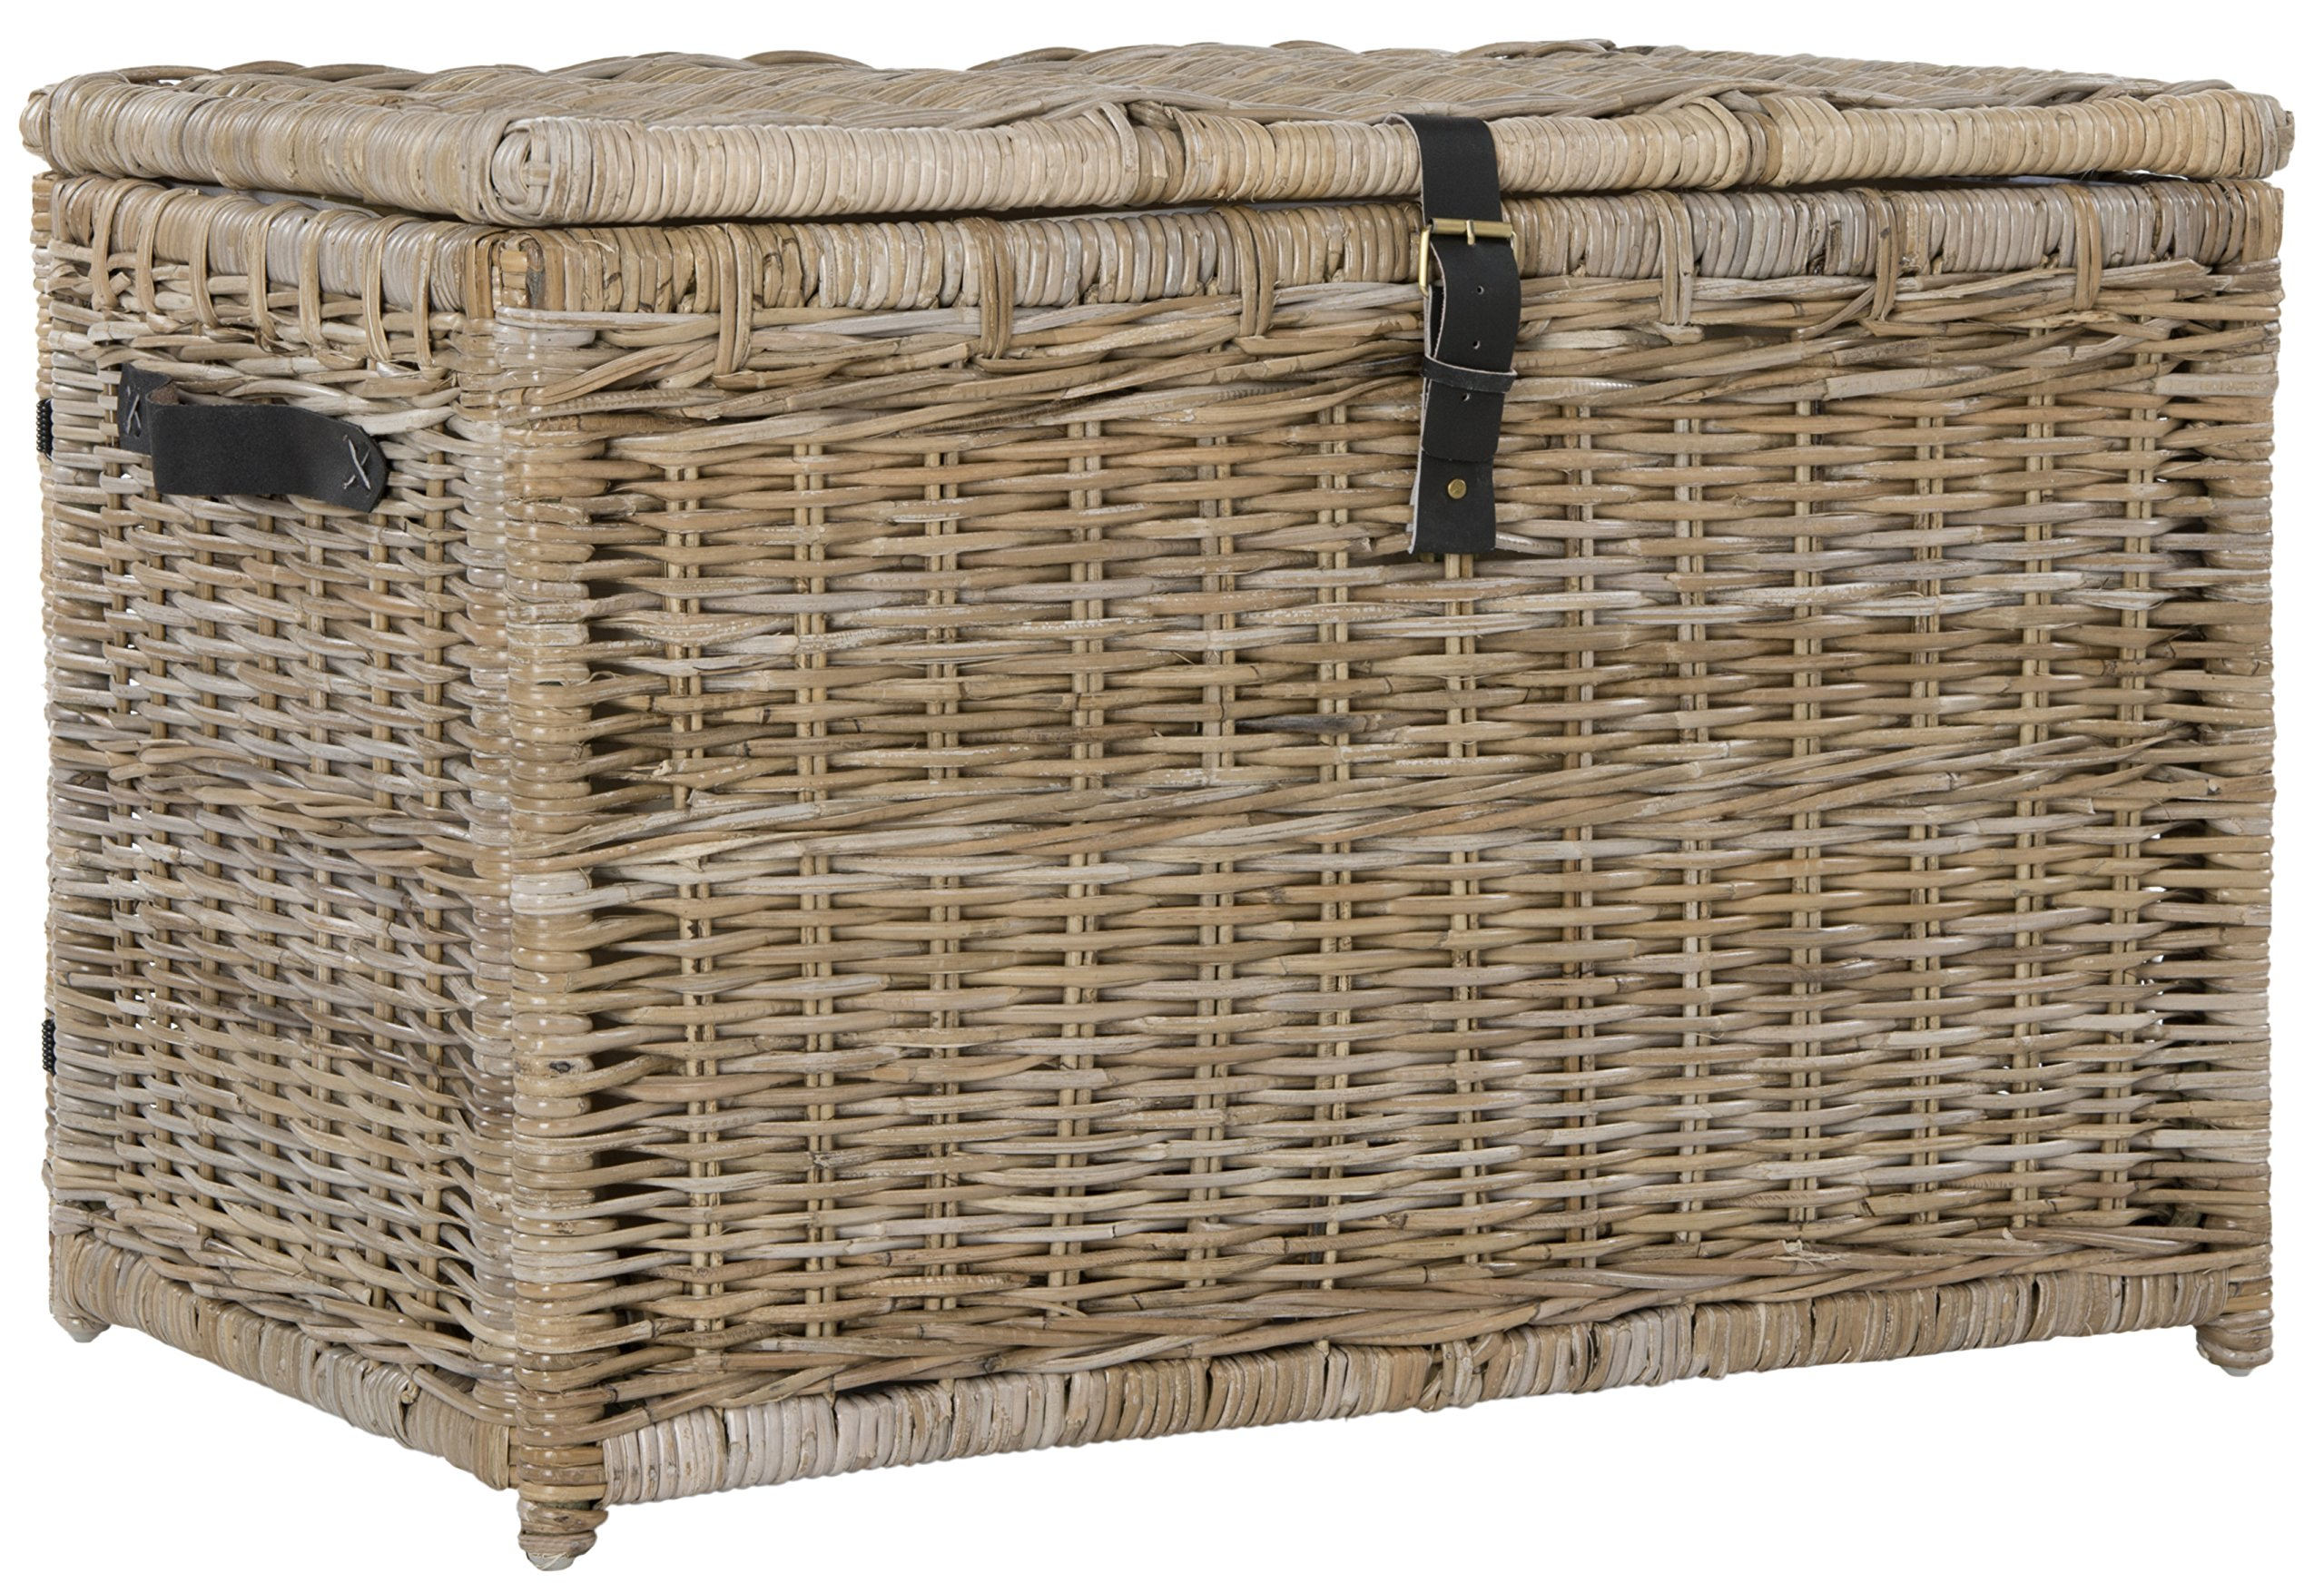 happimess Michael 35'' Wicker Storage Trunk, Natural by happimess